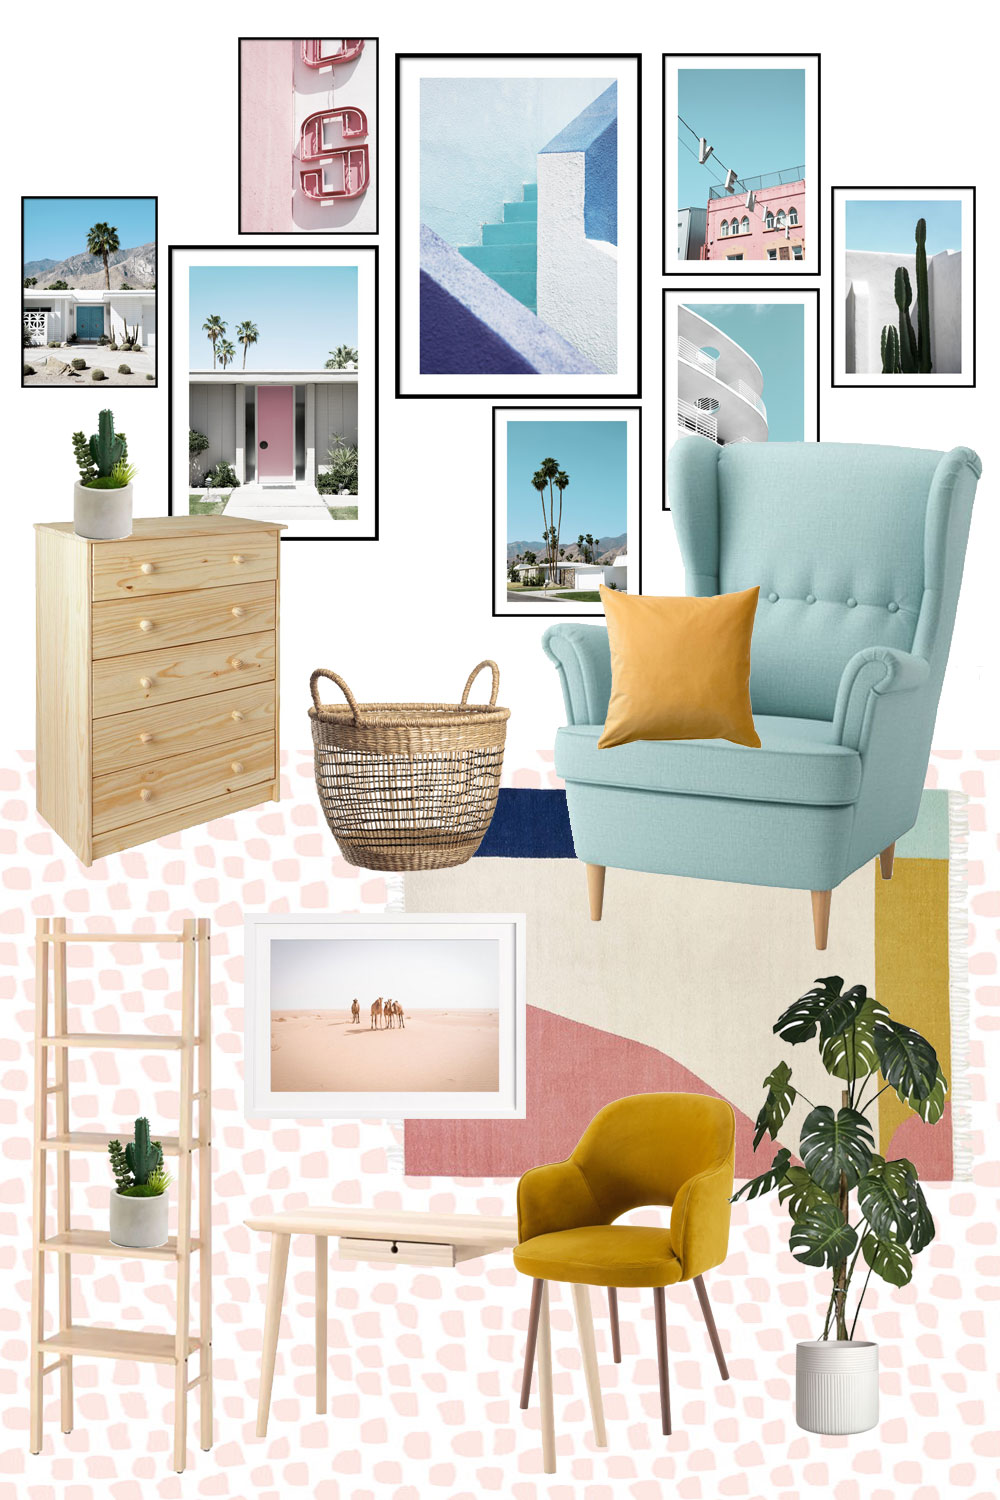 Check out my home office makeover moodboard and see how I'll be turning my spare room into a creative space to run my interior design blog full-time.